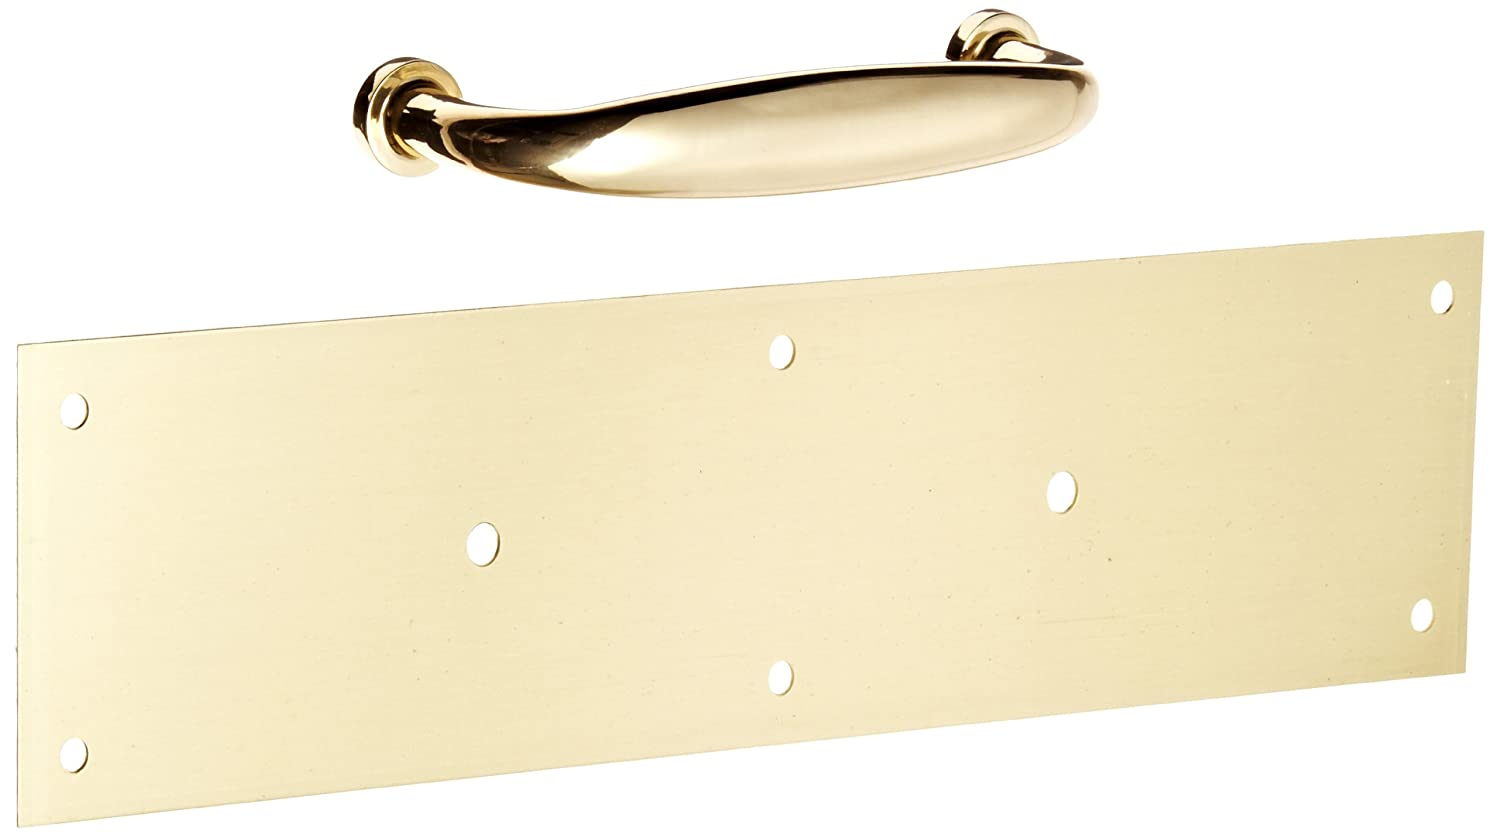 Satin Clear Coated Finish Rockwood 70A.4 Brass Standard Push Plate 12 Height x 3 Width x 0.050 Thick Four Beveled Edges